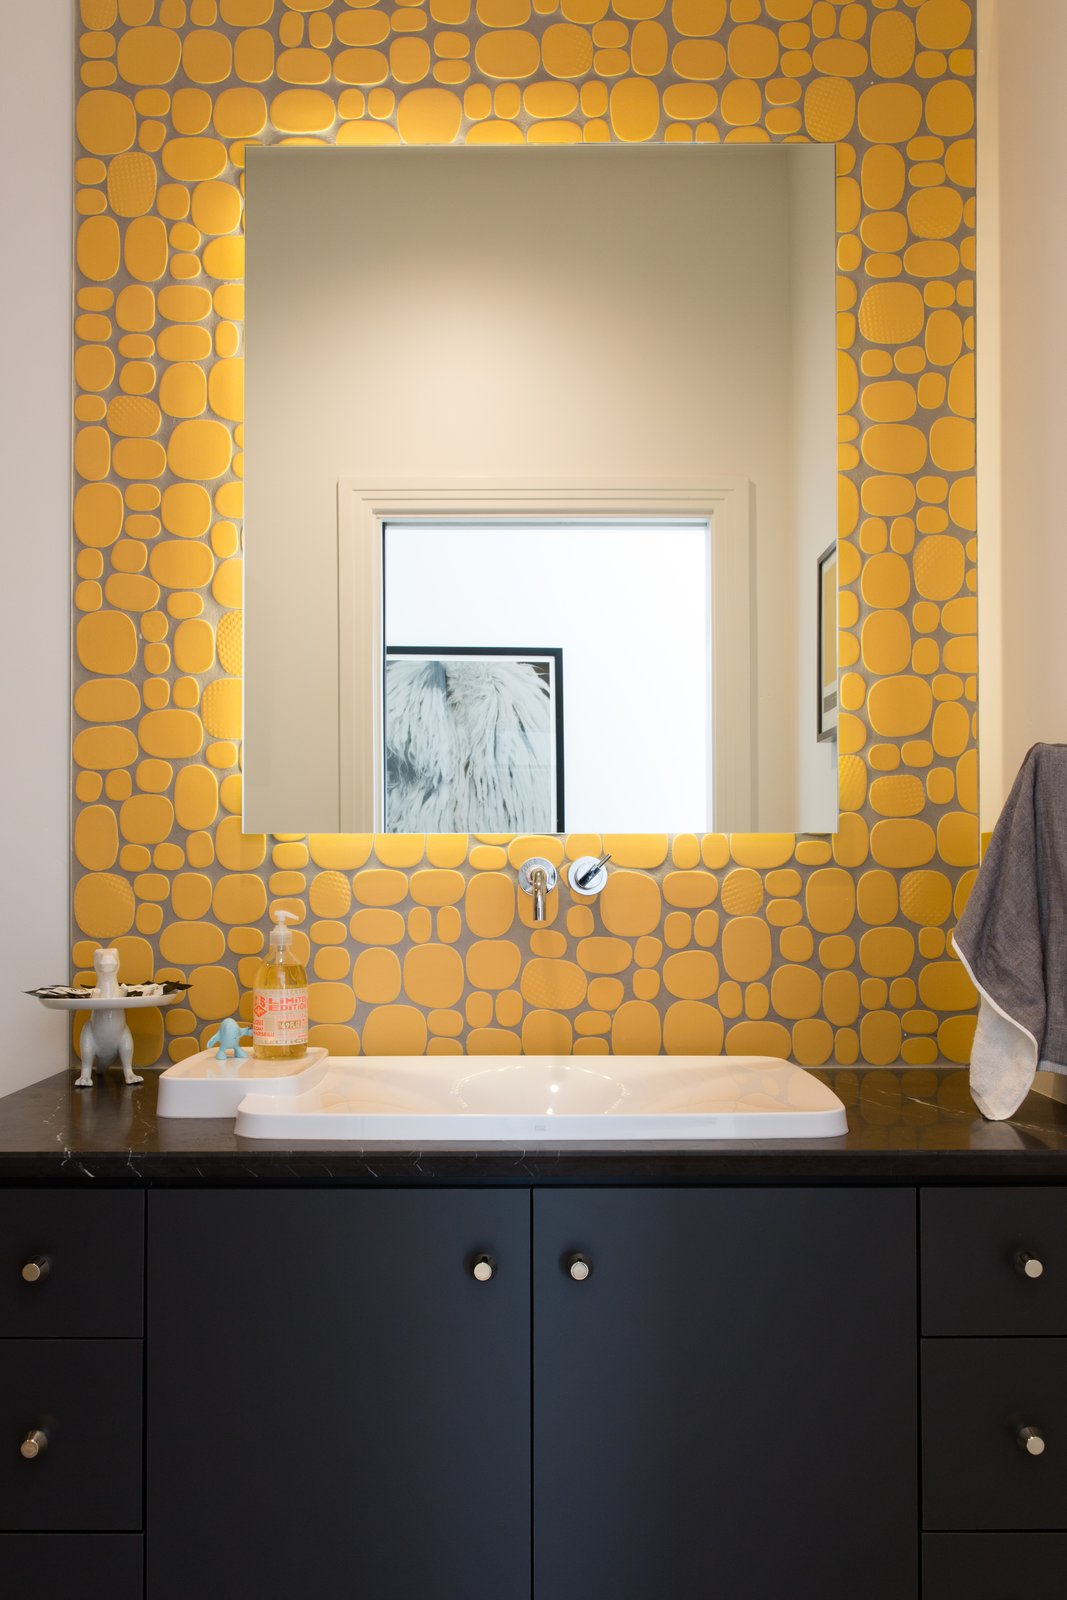 Bath Room, Ceramic Tile Floor, Marble Counter, Drop In Sink, Drop In Tub, Enclosed Shower, and Ceiling Lighting The North bathroom features Rex Rox Studio solar yellow ceramic tile by Modwalls, a custom vanity, marble countertop with knife-edge detail, and Axor Bouroullec faucets.  Signature Trustile Doors & Emtek Hardware exemplify the finish detail throughout the property.  1980s Modern Meets The New Millennium